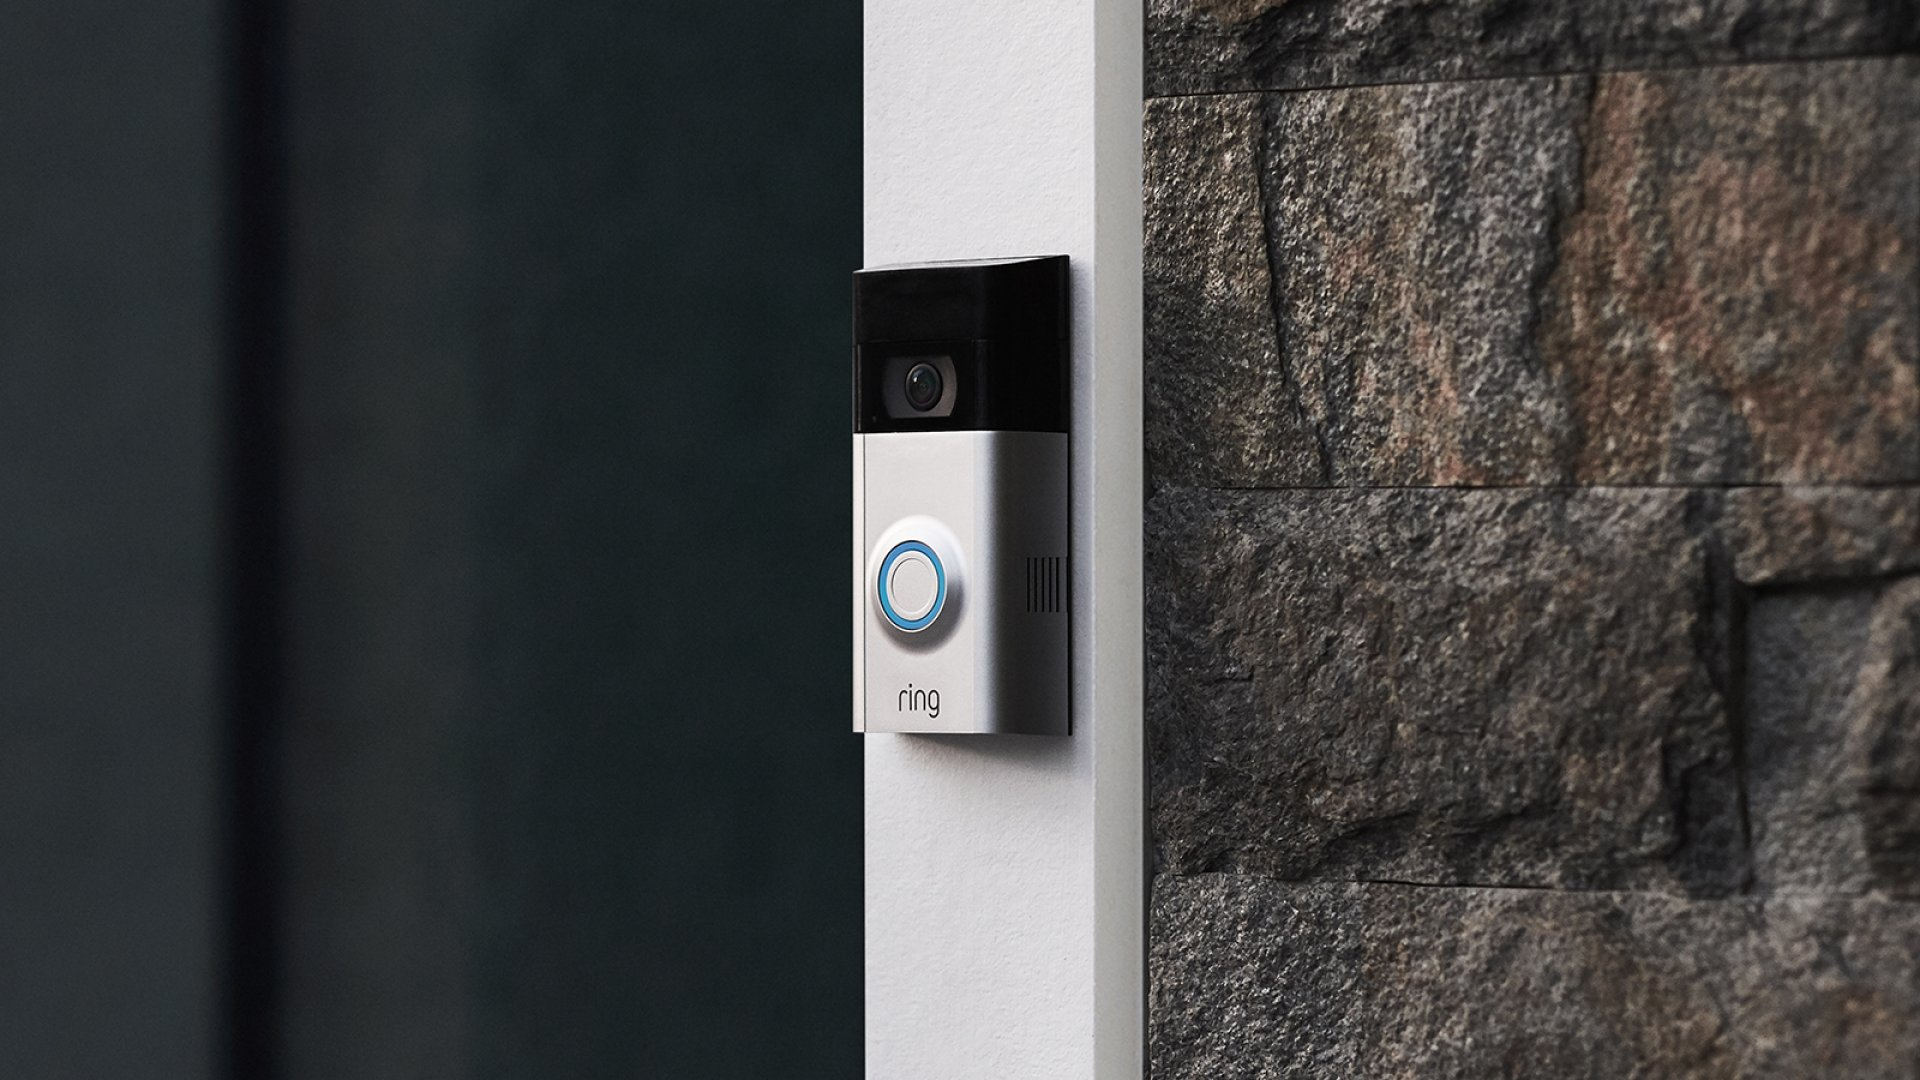 Ring's Video Doorbell. Amazon acquired the company in February 2018.